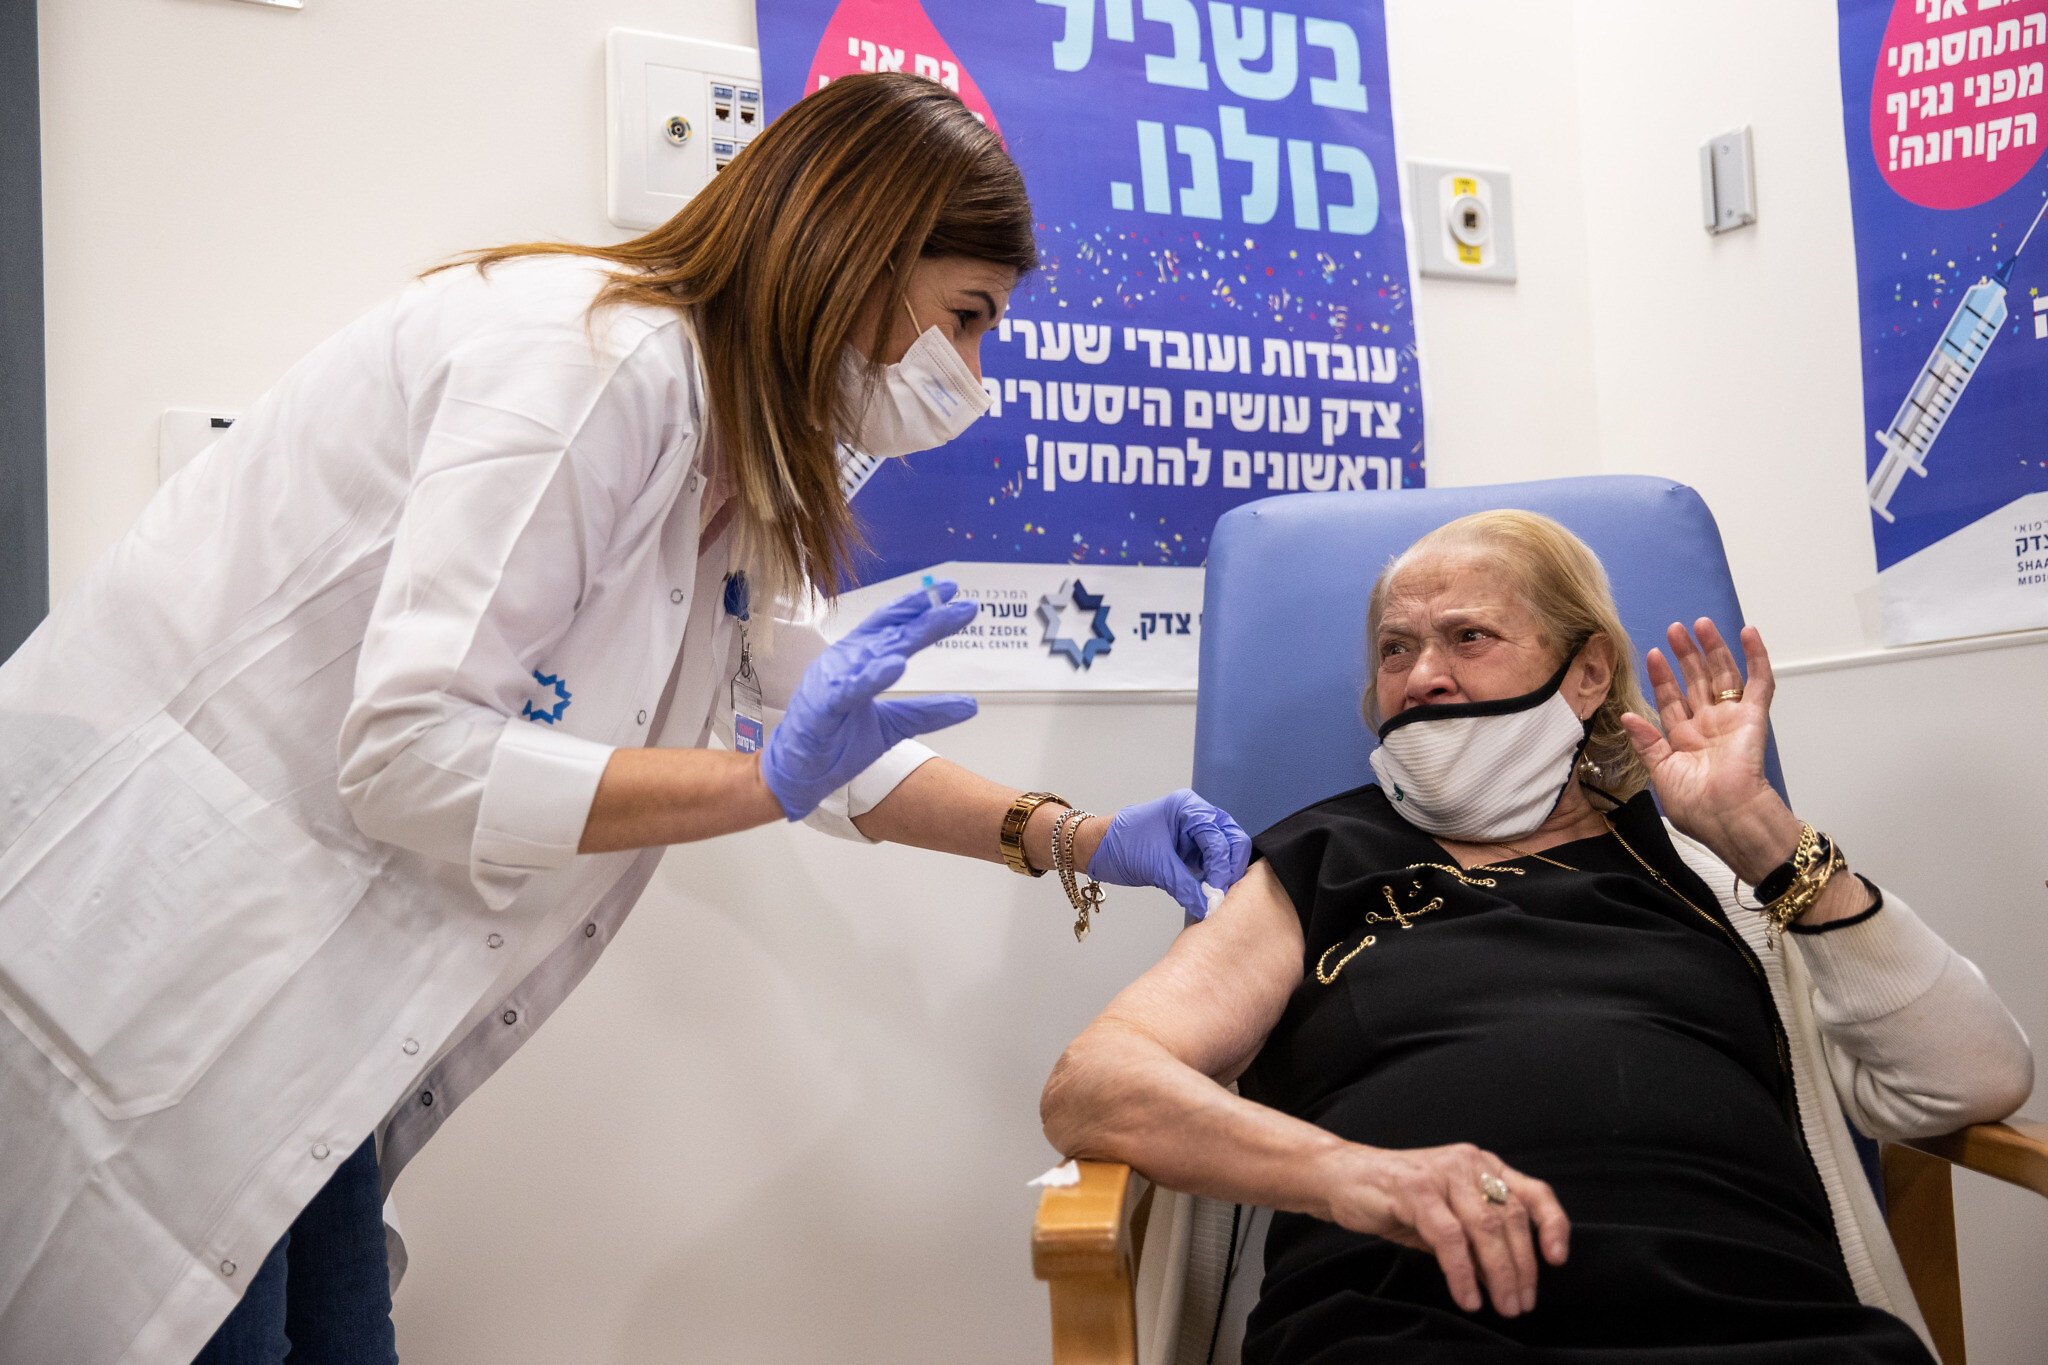 Israel's vaccination drive likely to be briefly halted next week   The  Times of Israel